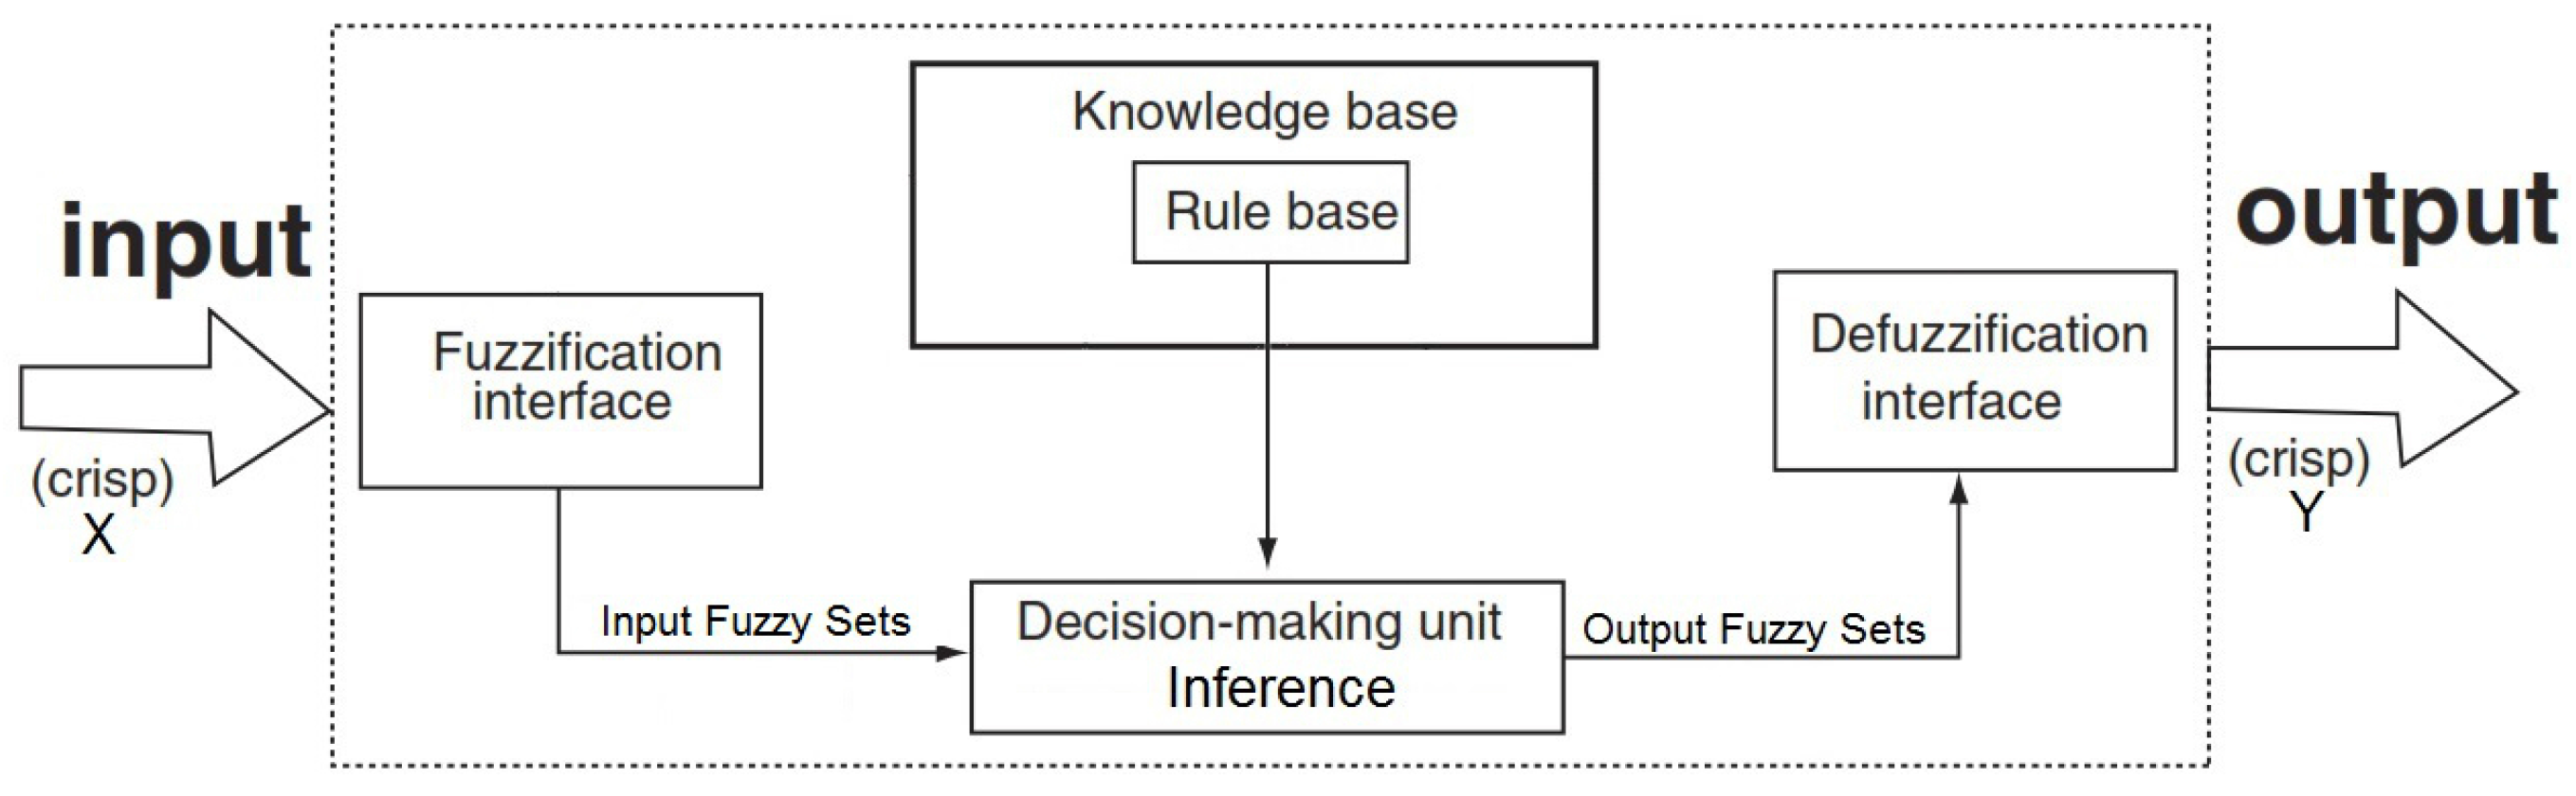 general notion of inference Quotes in statistics & science we may at once admit that any inference from the particular to the general must be prepared to give up every preconceived notion.